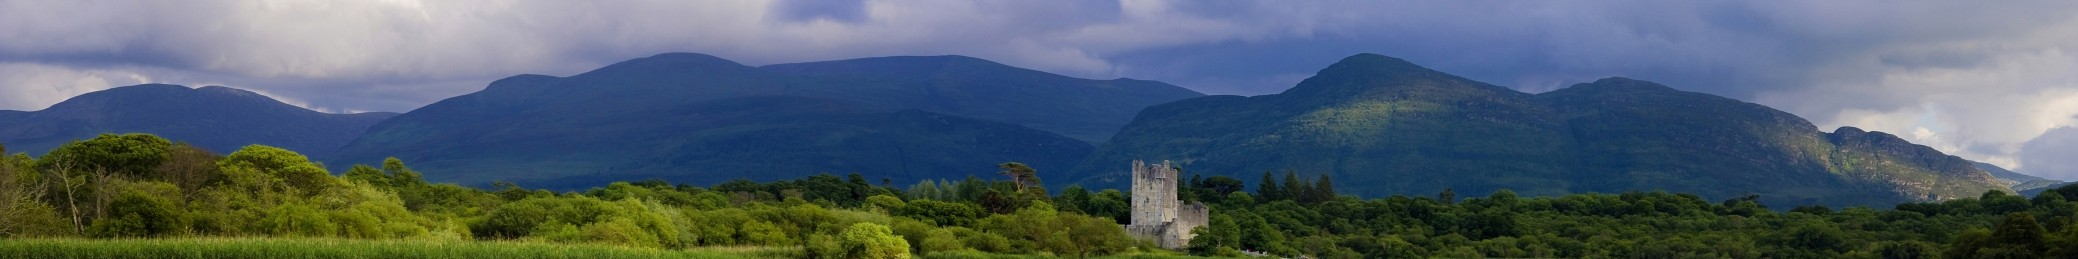 Ireland Castles - Campervan Hire with Bunk Campers